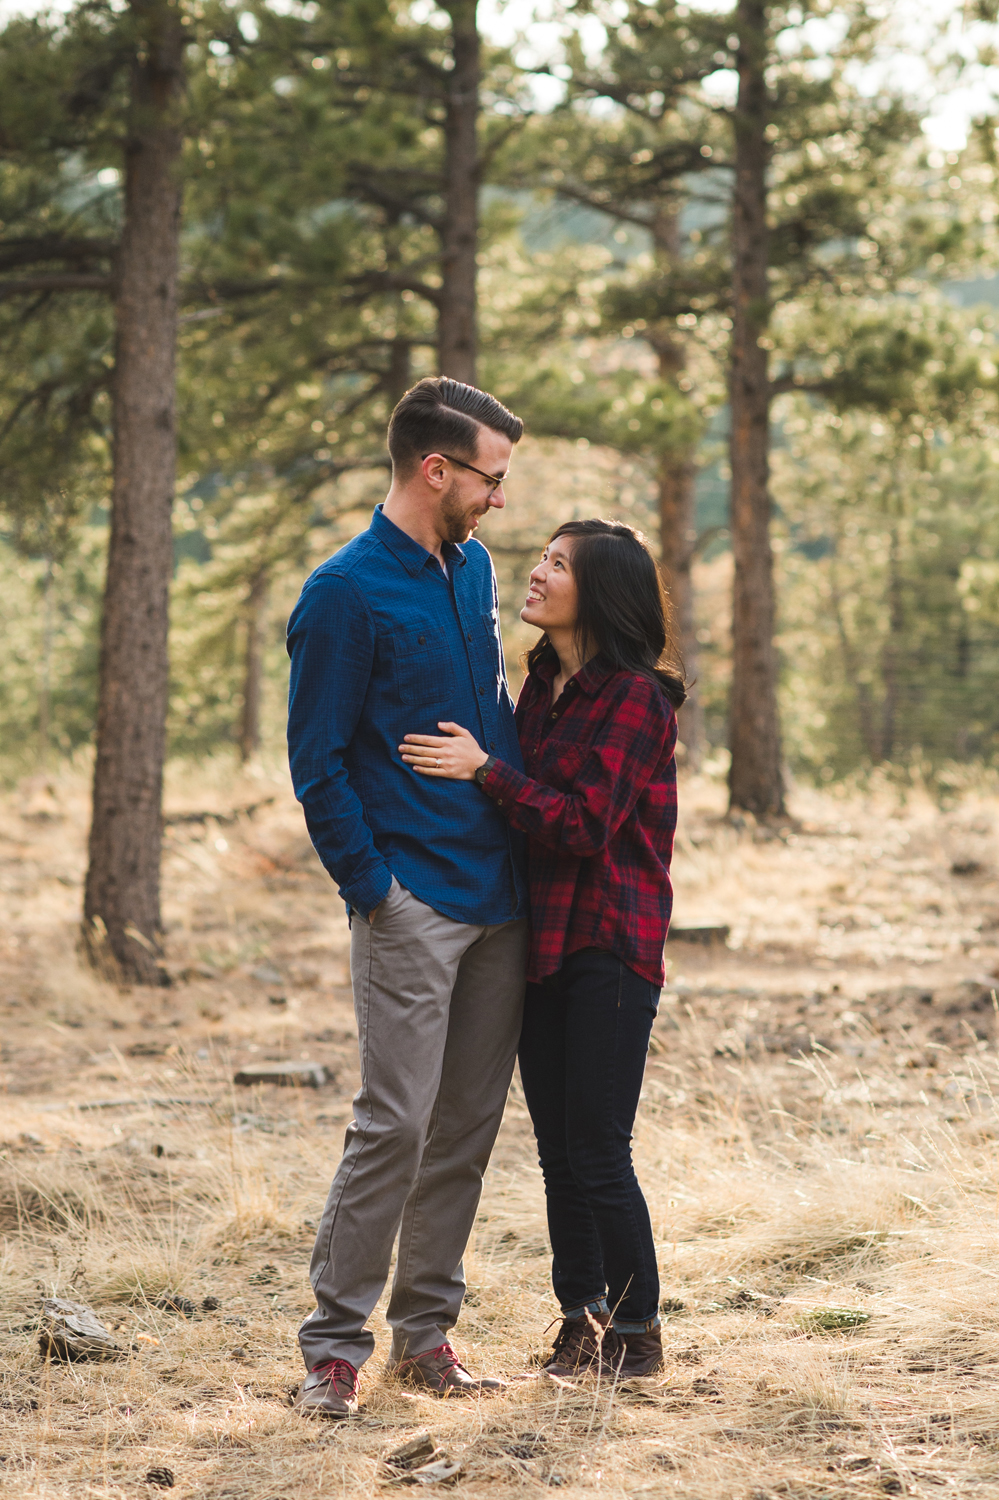 TiffanyandMark_Engaged_0722_squarespace.jpg